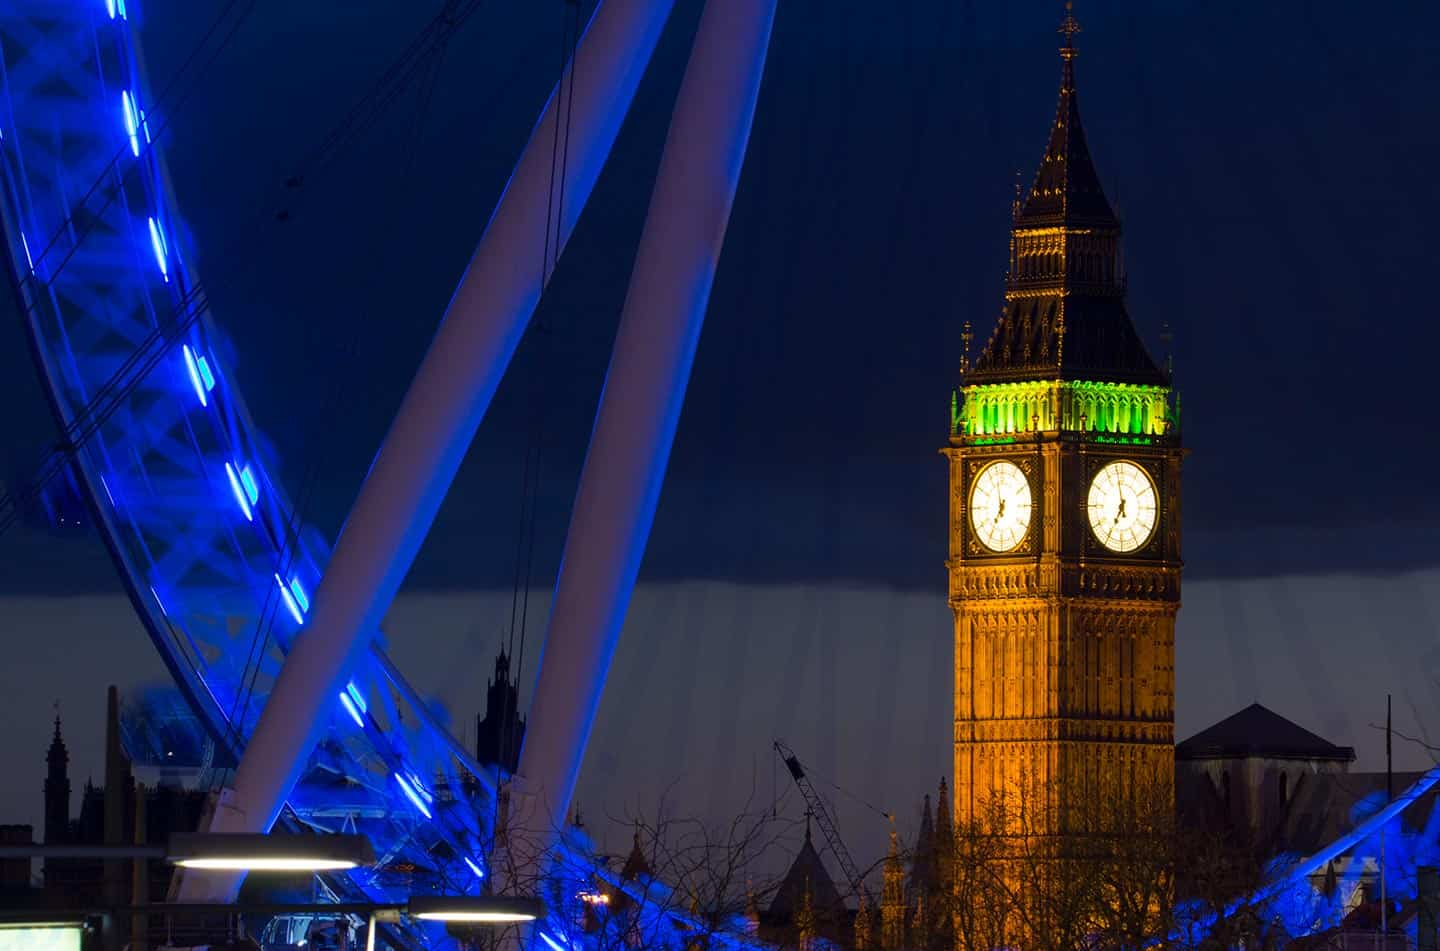 Image of Big Ben and the London Eye at night